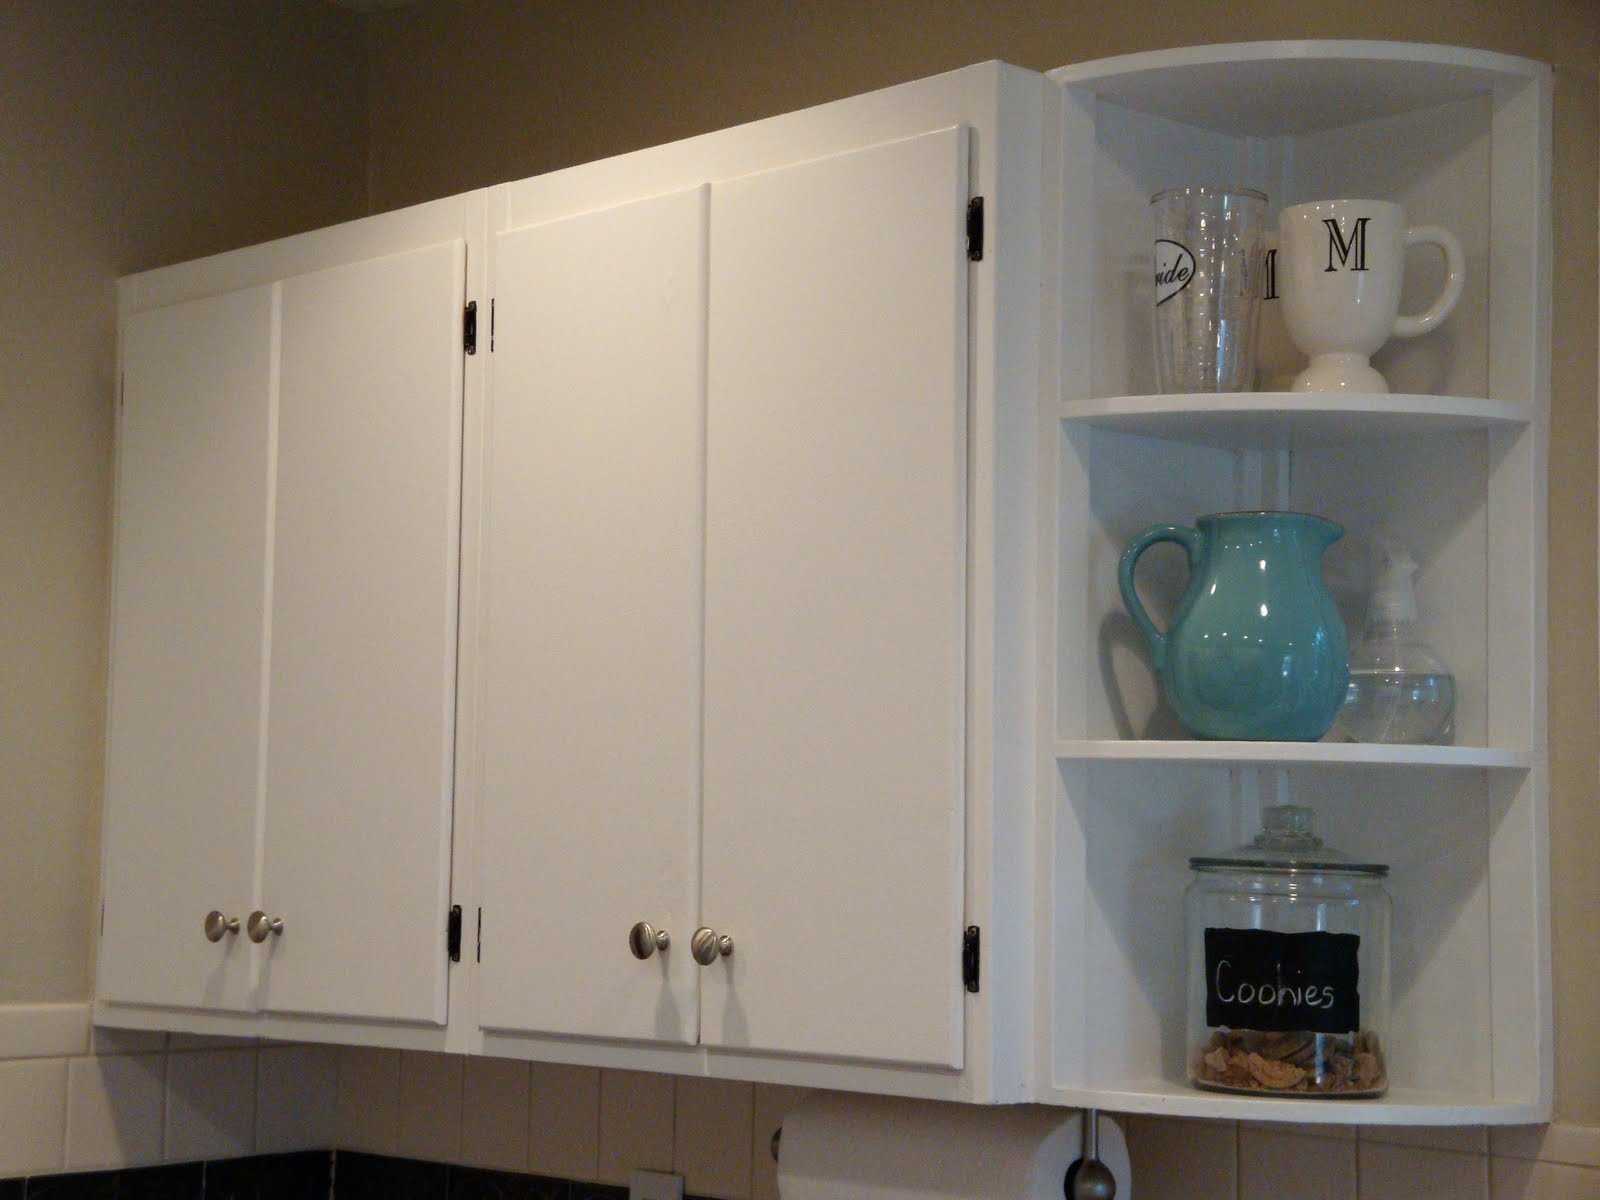 discount kitchen cabinets to improve your kitchens look kitchen cabinets wholesale beadboard discount white kitchen cabinets